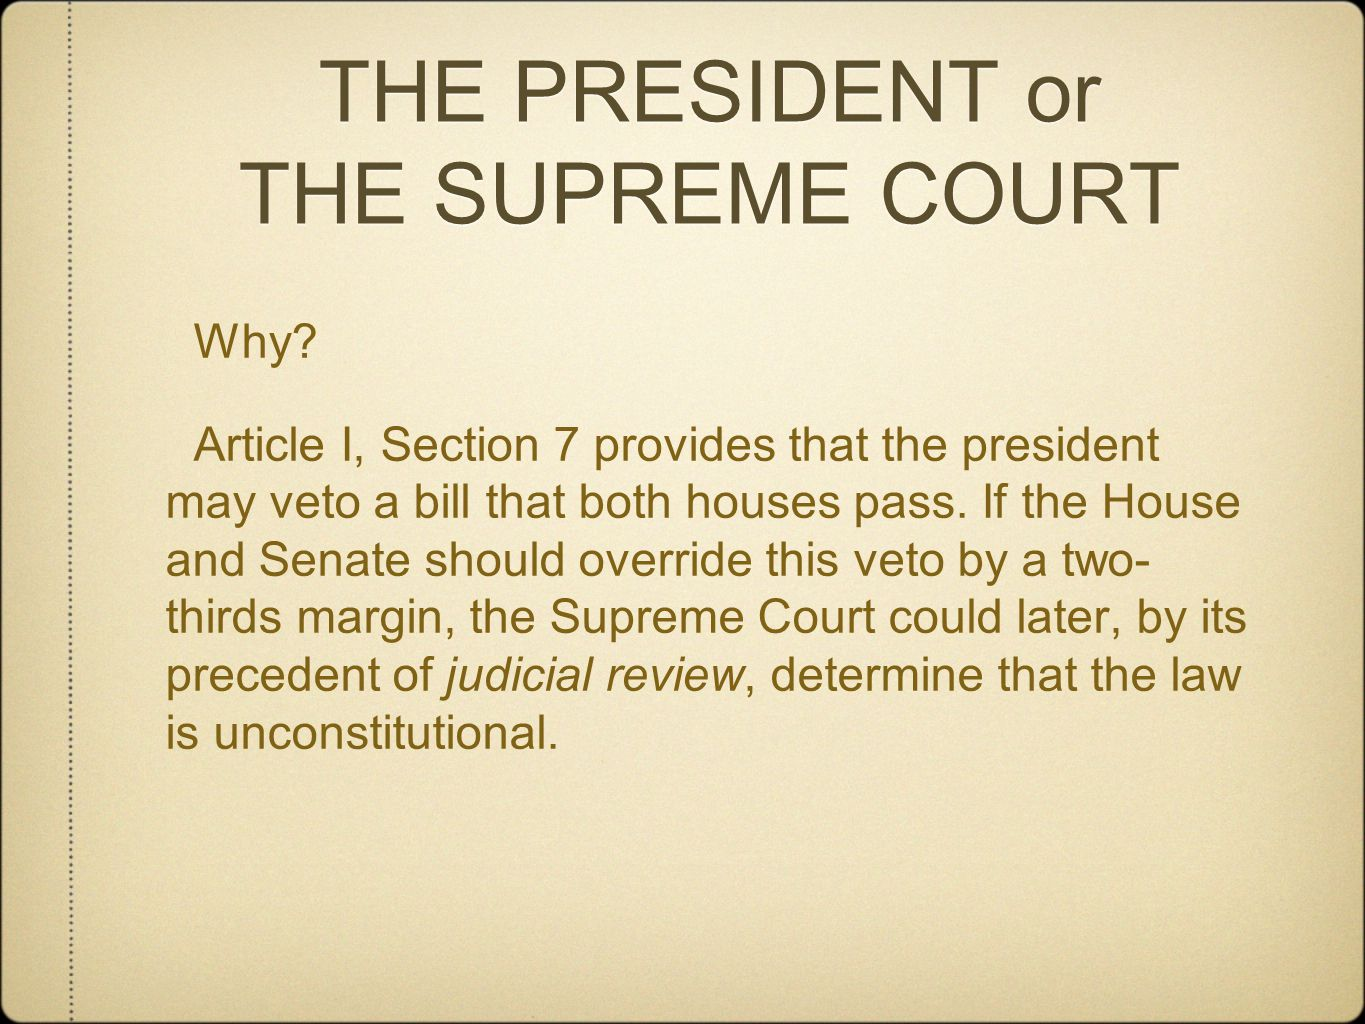 THE PRESIDENT or THE SUPREME COURT Why? Article I, Section 7 provides that the president may veto a bill that both houses pass. If the House and Senat